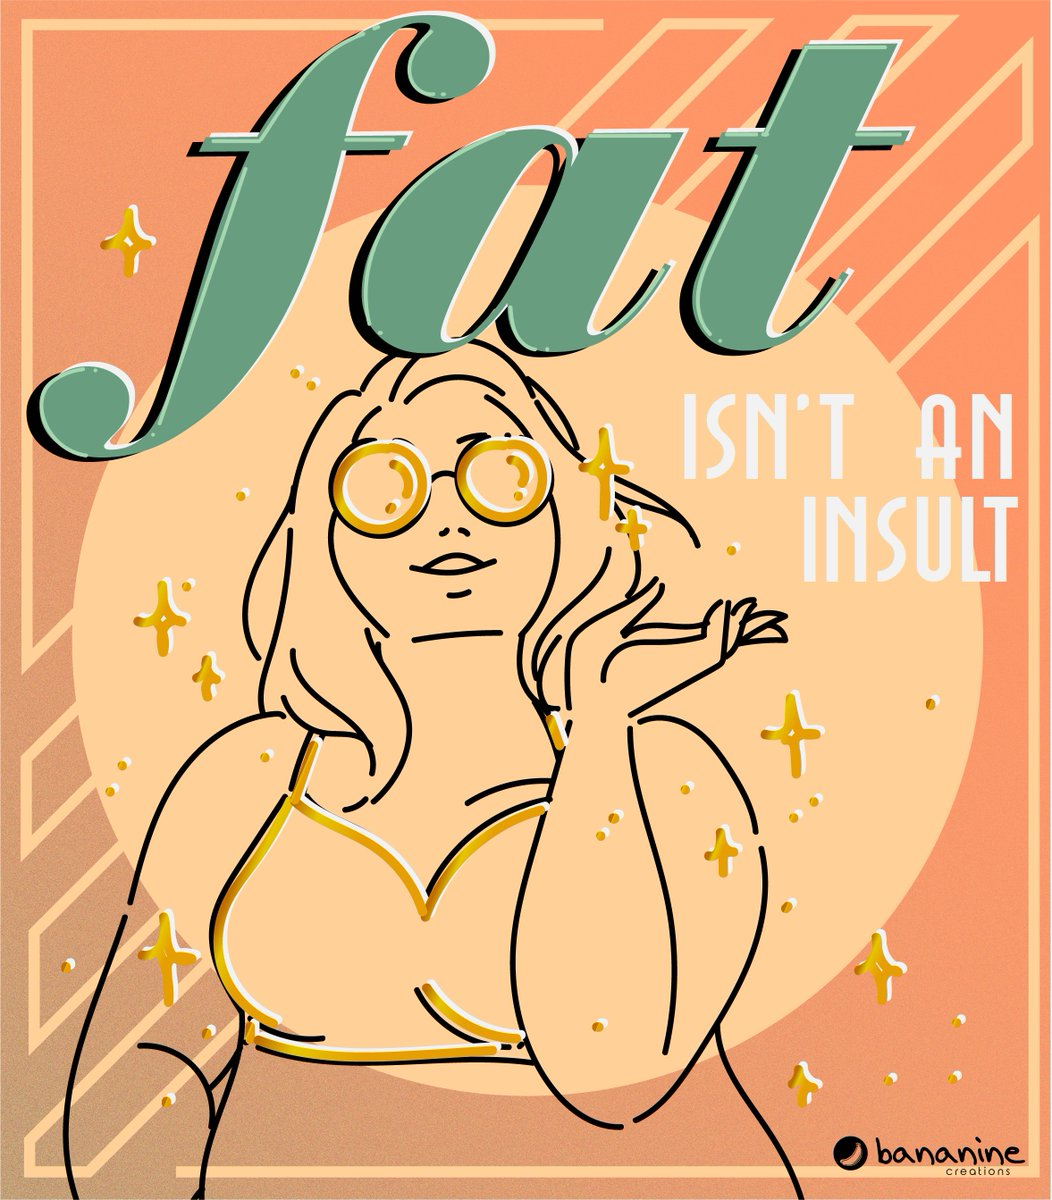 FAT IS NOT AN INSULT say it loud, say it proud DONT REPOST/USE#artph #illustration #graphicart #graphicdesignpic.twitter.com/hqj6970ZA5